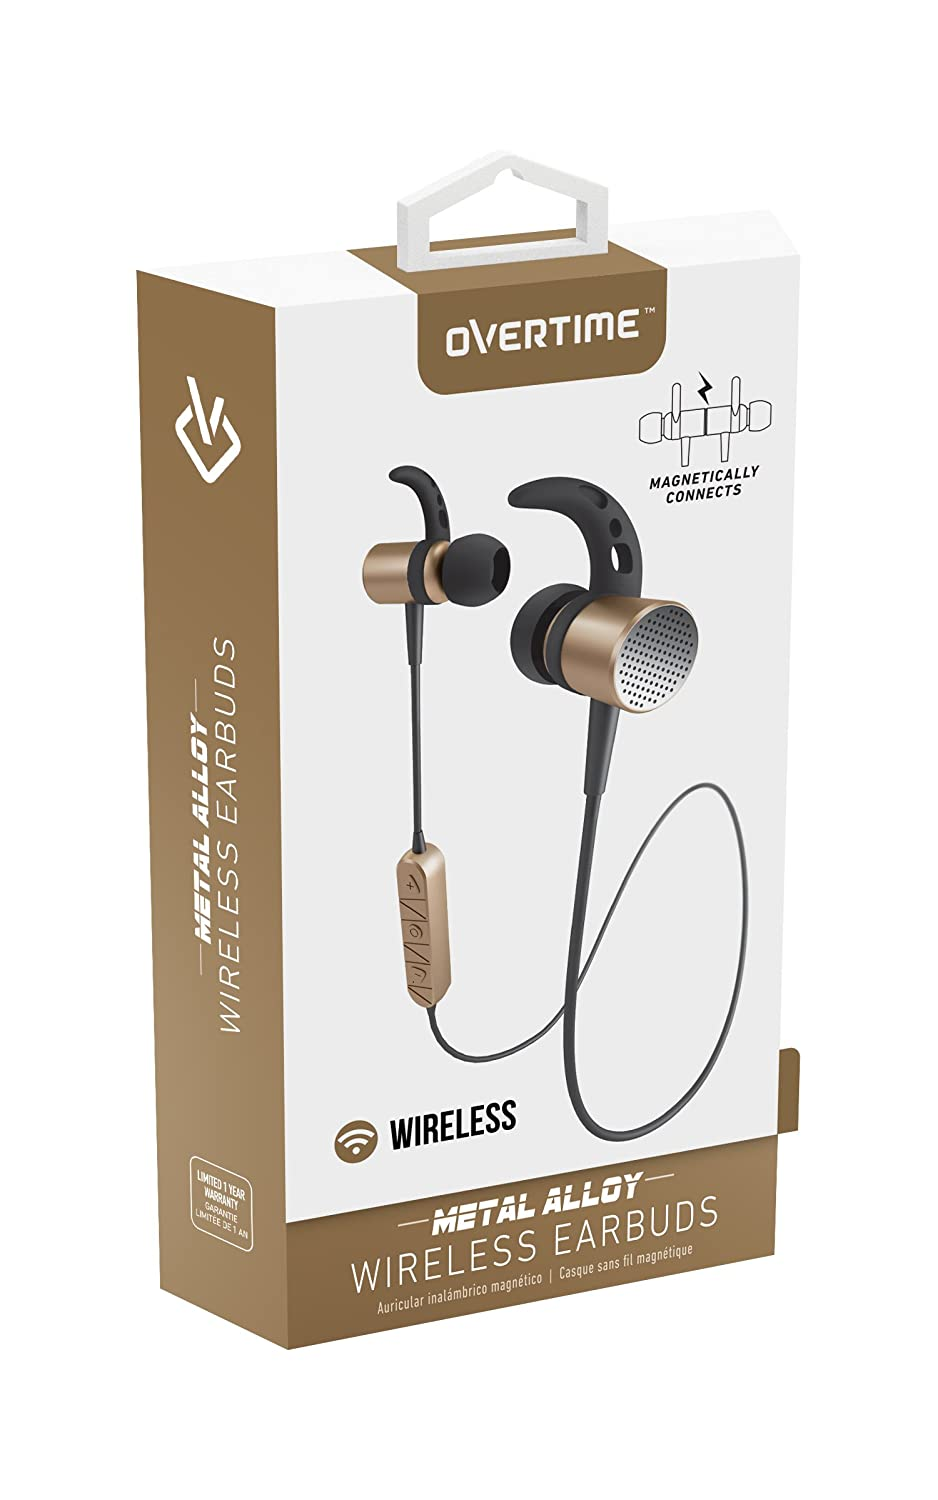 Amazon.com: Bluetooth v4.2 Earbuds with Mic – Metal Alloy Earphones for iPhone iPod Samsung Galaxy HTC S6/7/8 ZTE LG - Gold: Cell Phones & Accessories